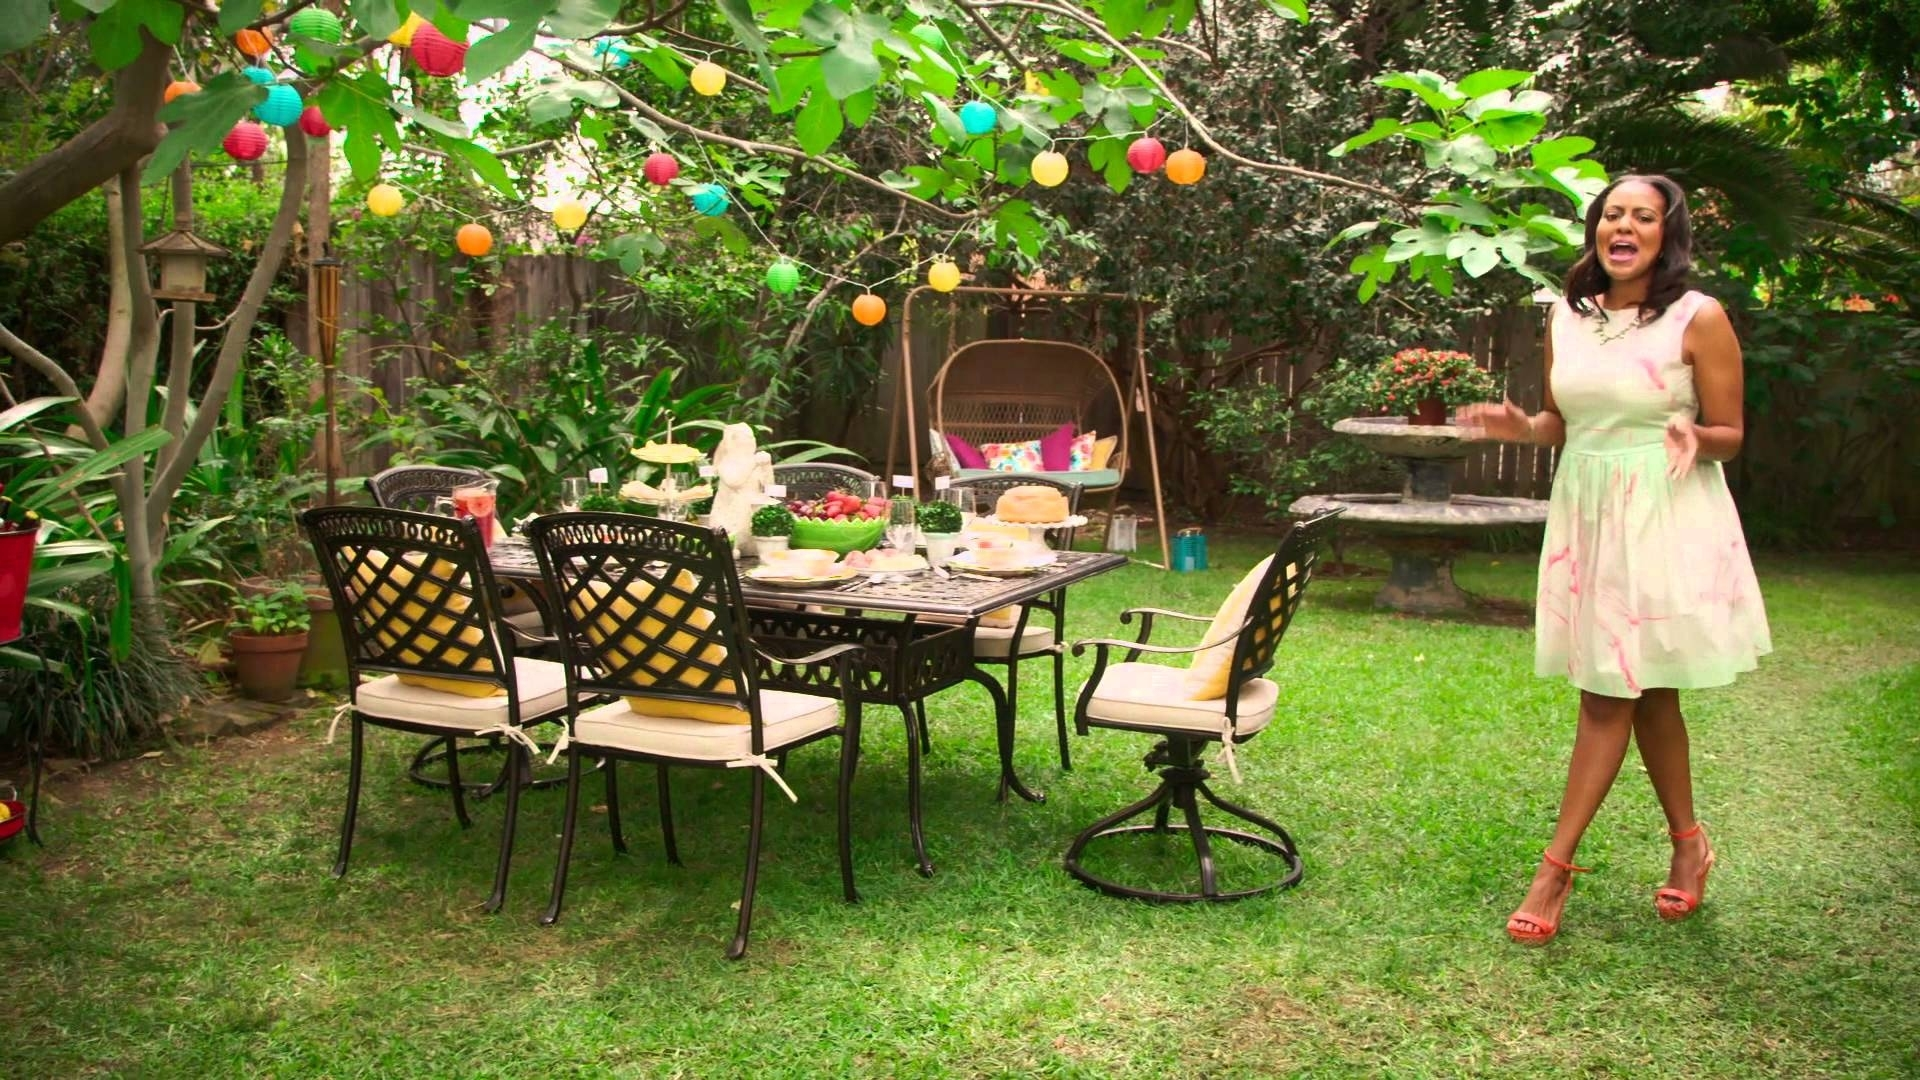 Pier 1 Imports: The Perfect Look For A Garden Party Brunch - Youtube intended for Backyard Easter Garden Brunch